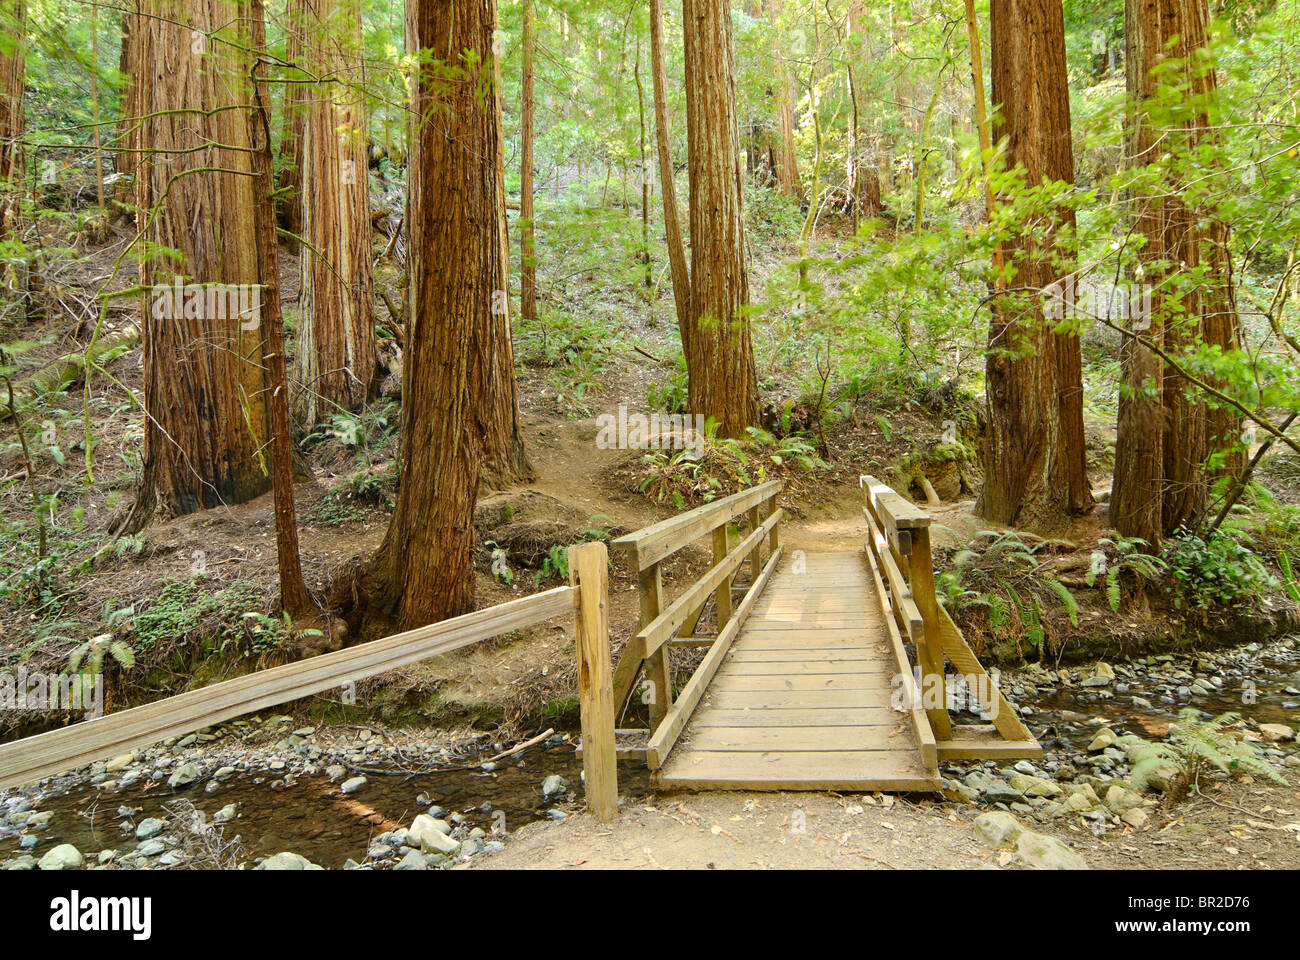 Redwood Forest of Muir Woods National Monument. - Stock Image